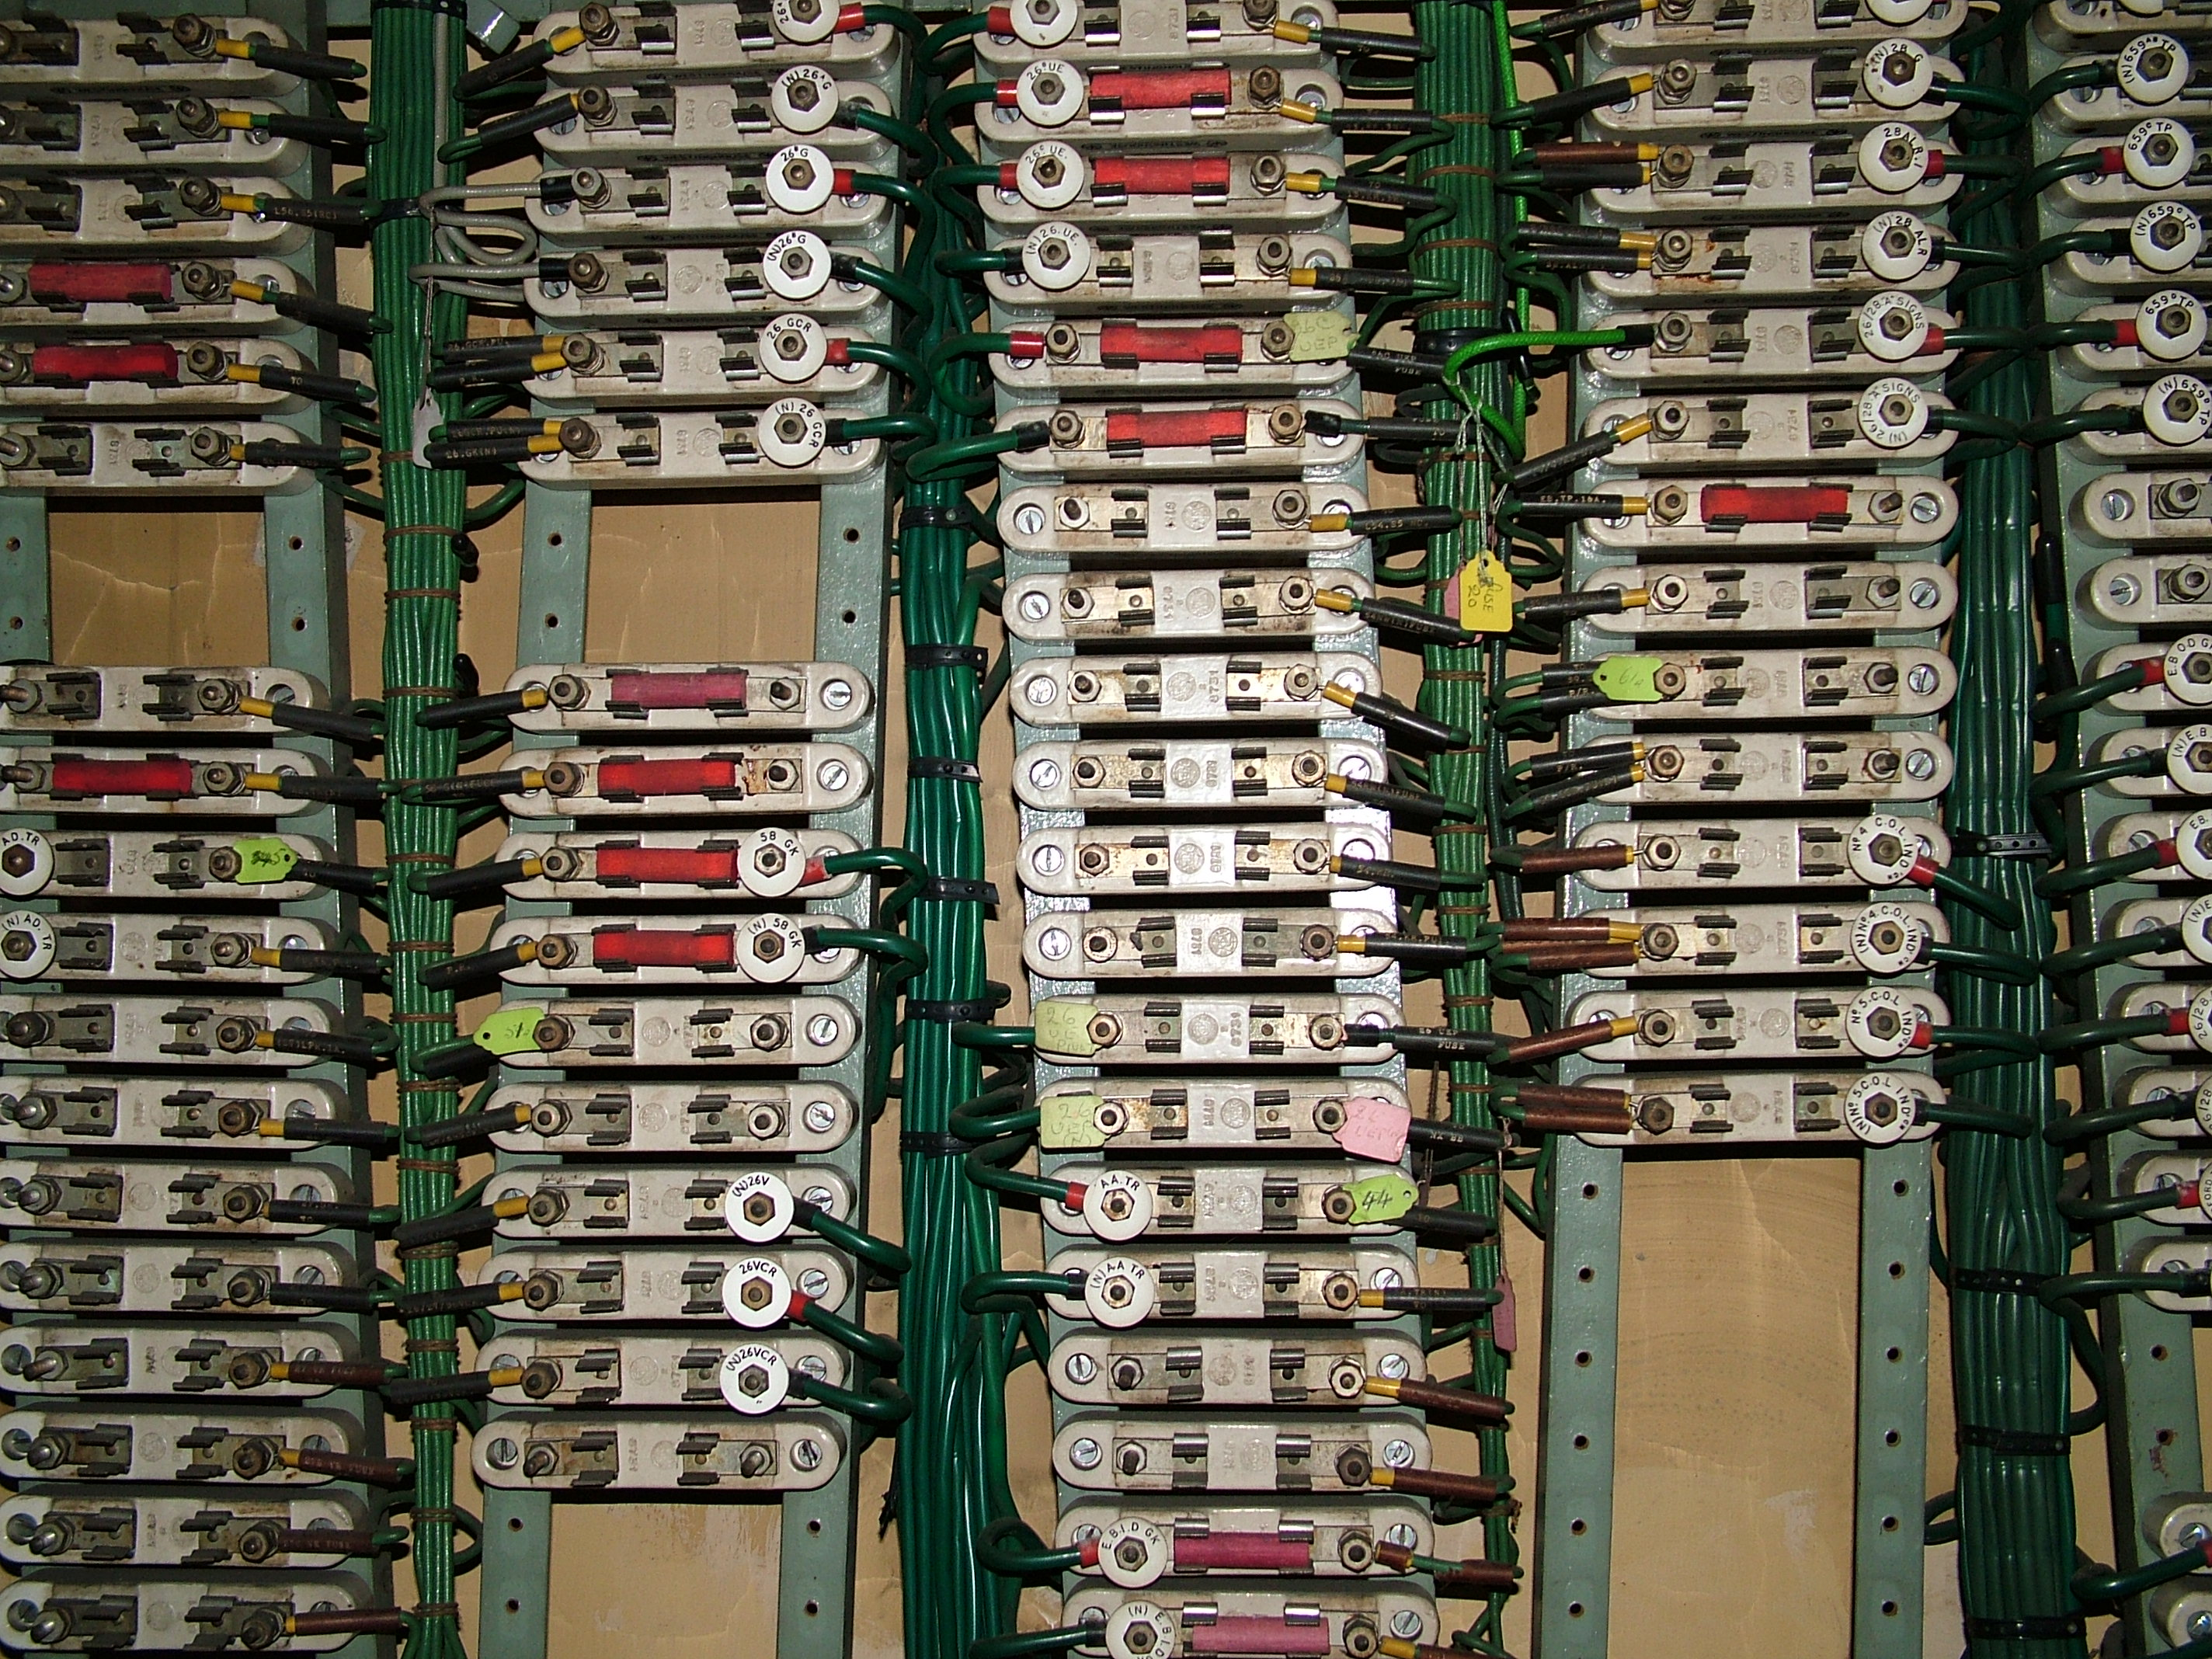 The Gorge Loughton Signal Cabin And Station Relay Logic Circuits Examples Enlarge 712x534 Fullsize 2848x2136